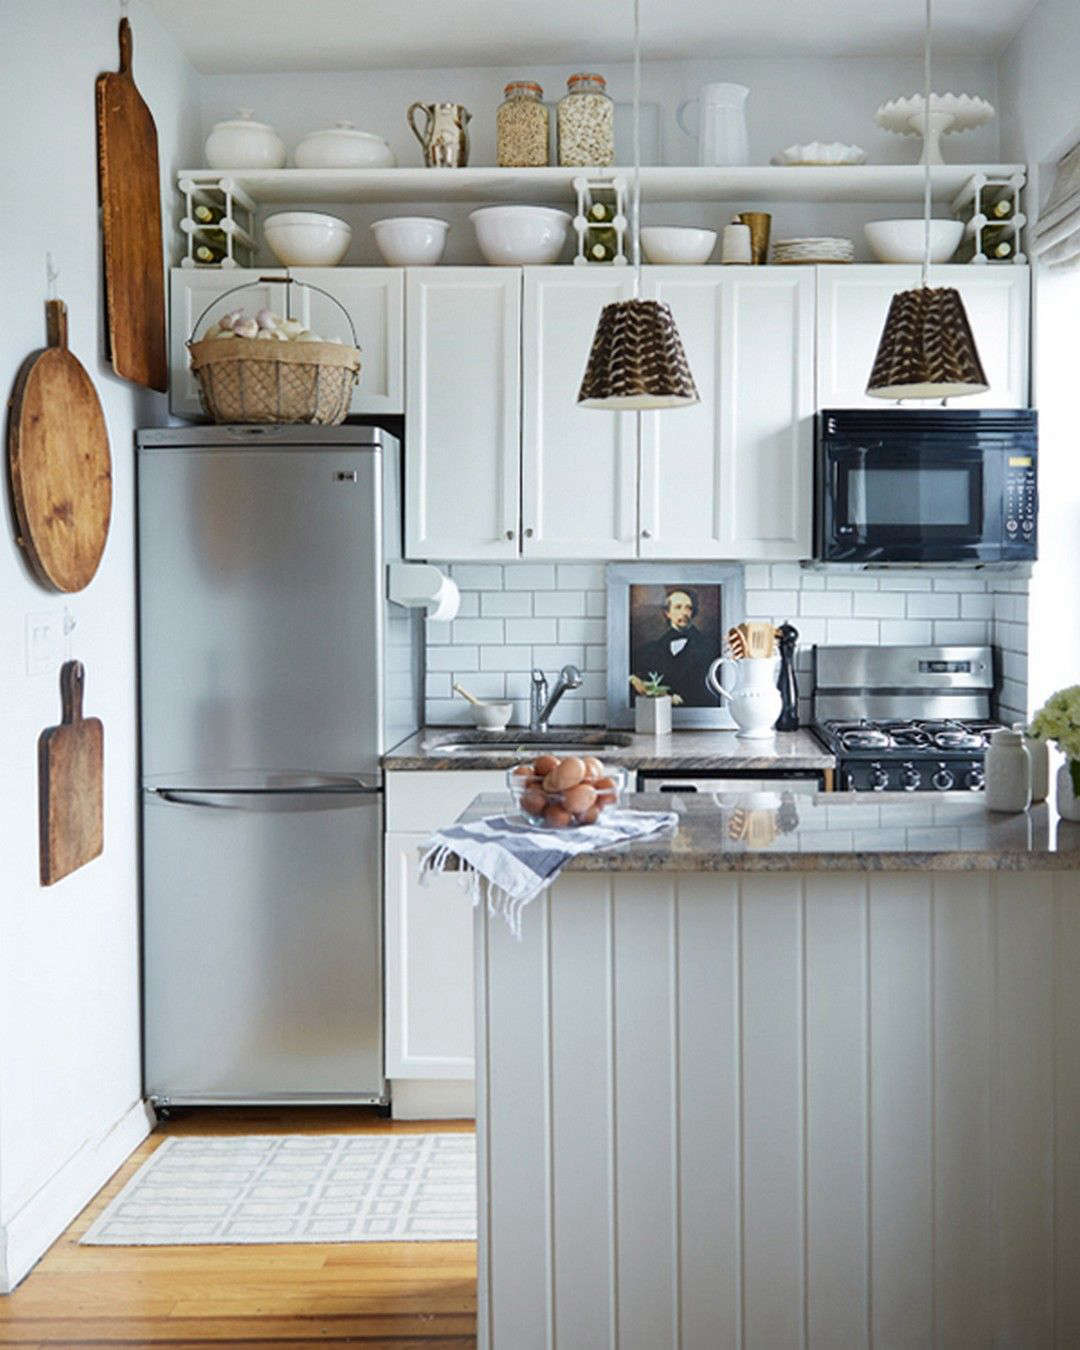 The New Art Gallery: 12 Favorite Kitchens with Paintings on Display ...